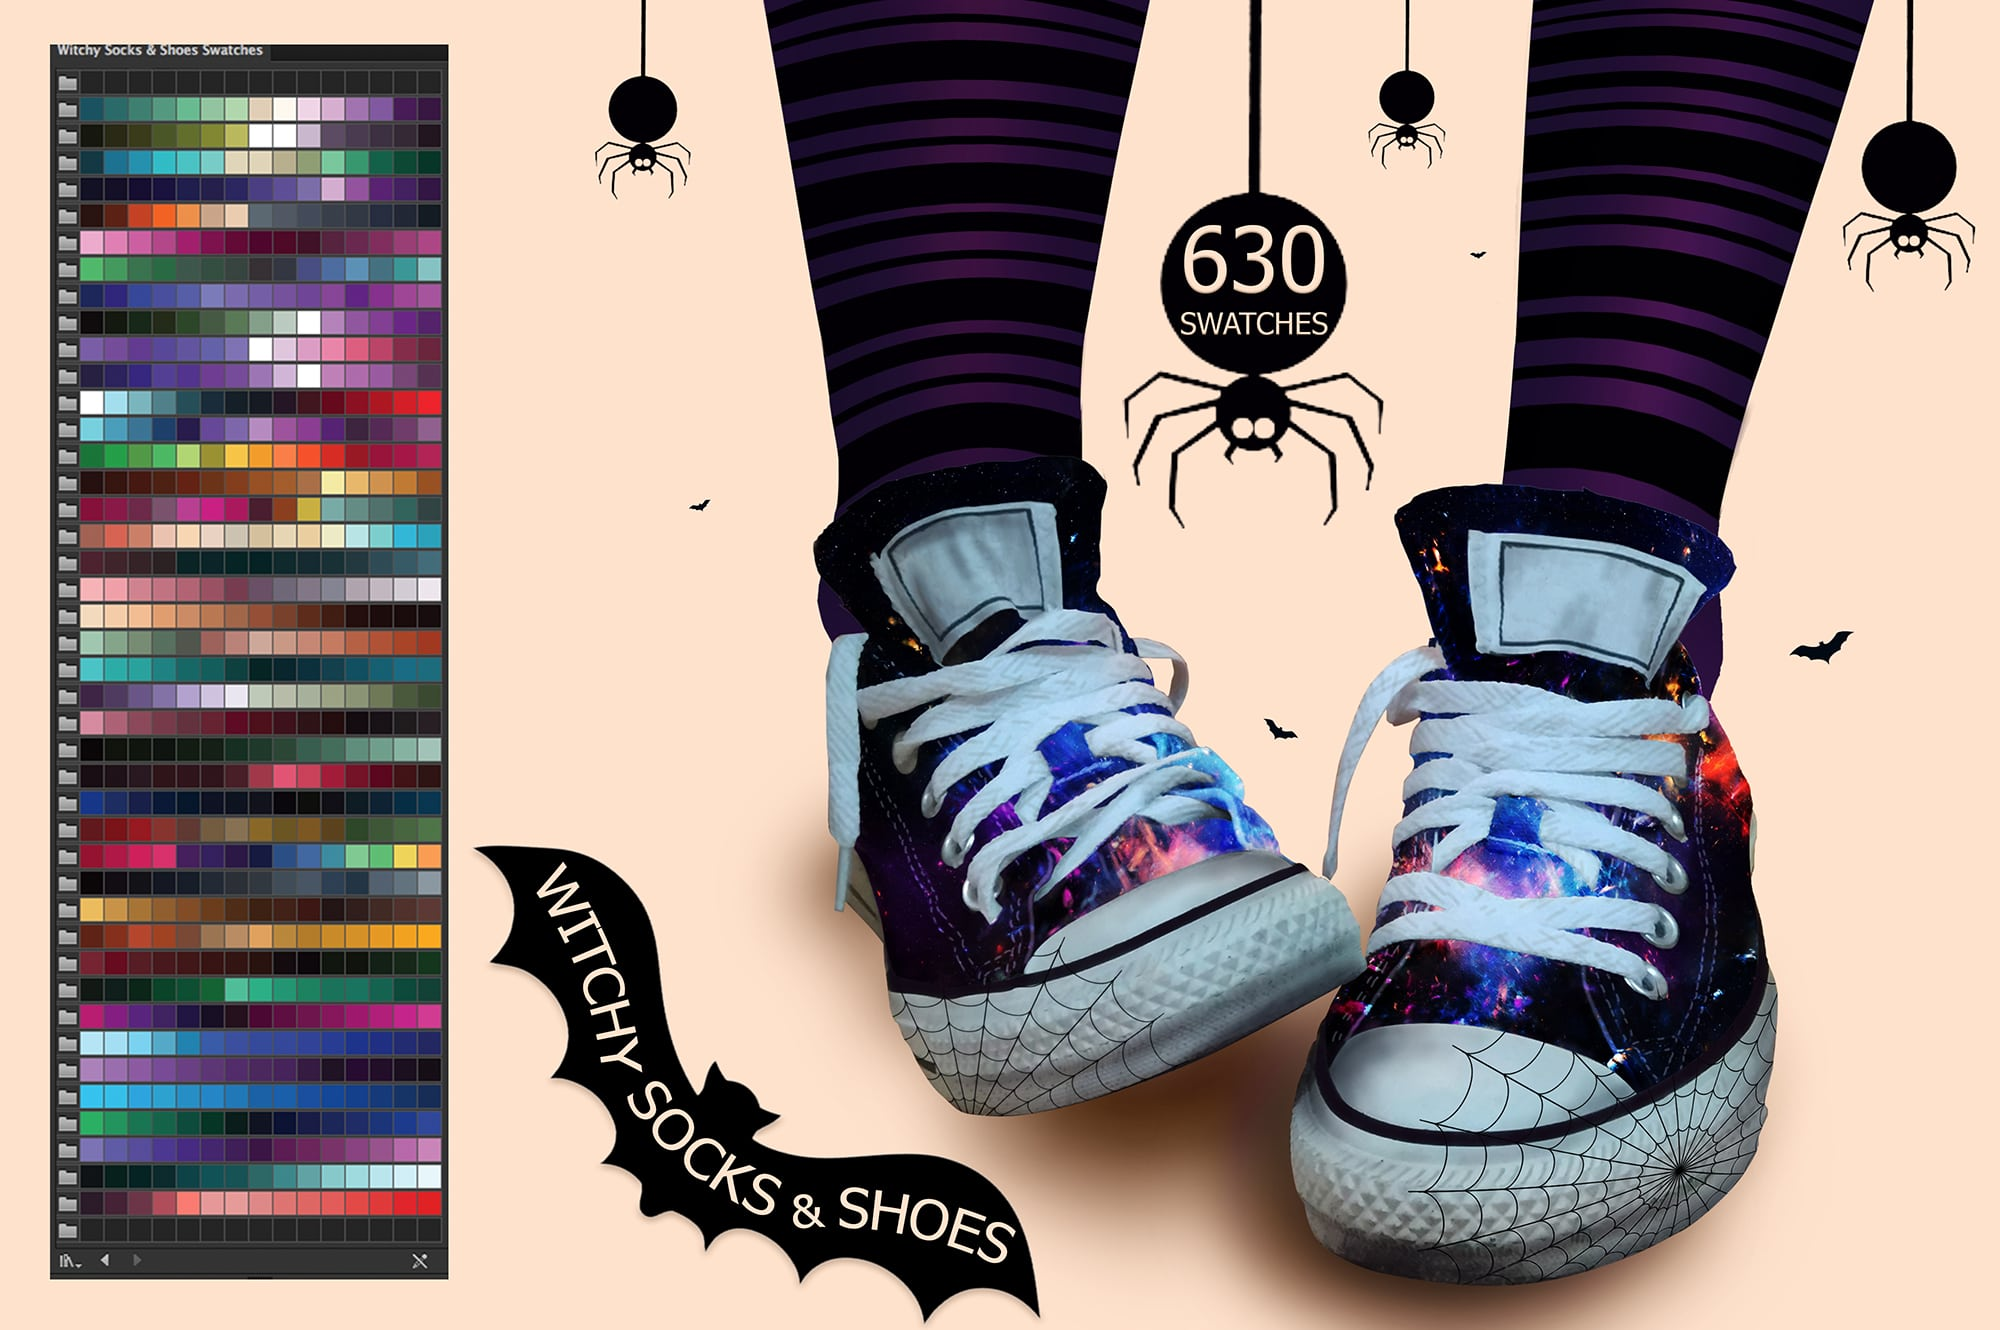 6924 Illustrator Swatches and Digital Painting - 2 min